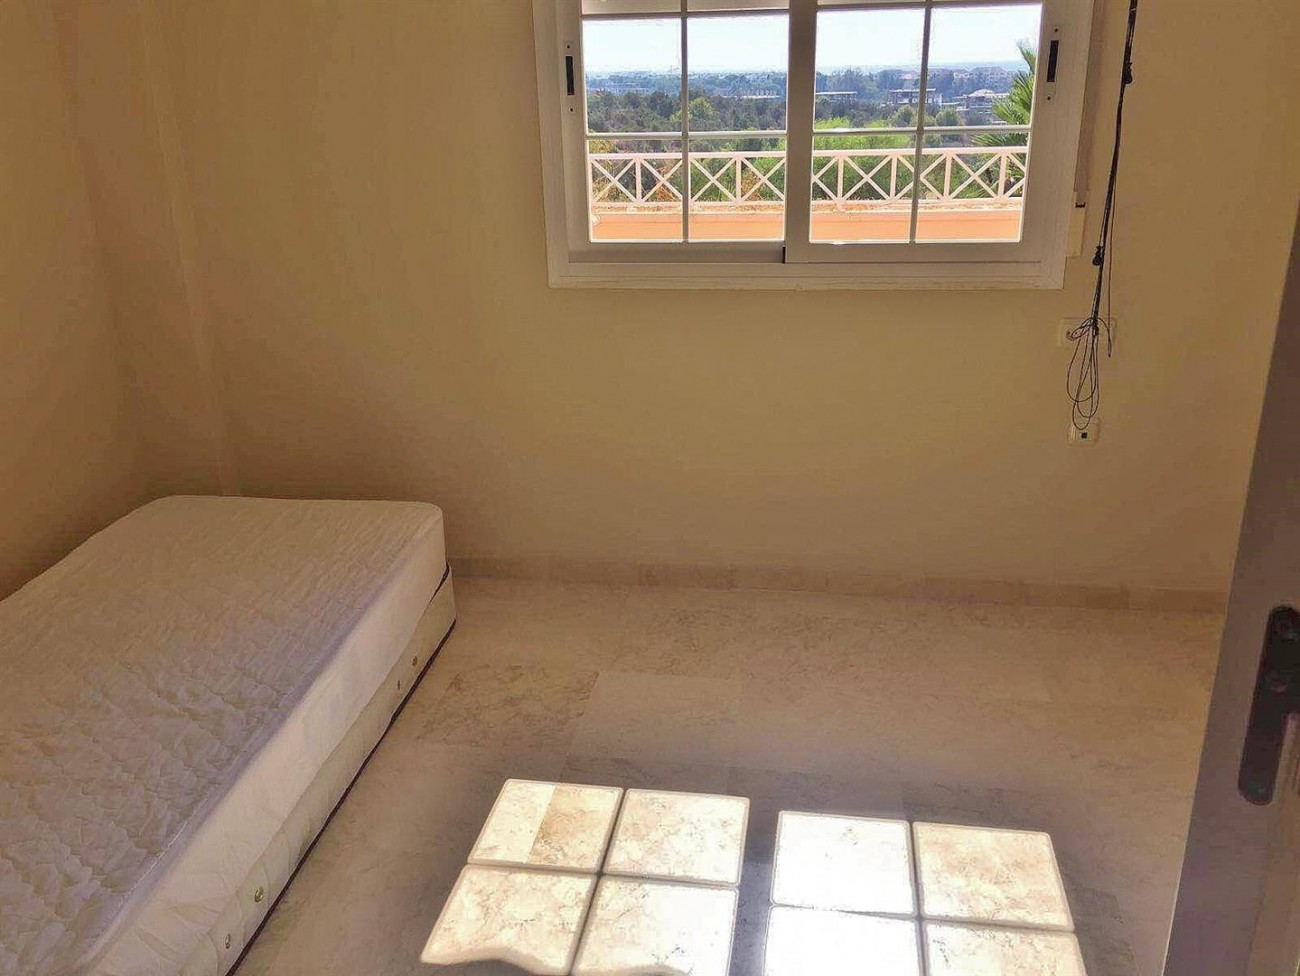 3 Bedrooms apartment for rent East Marbella (8) (Large)